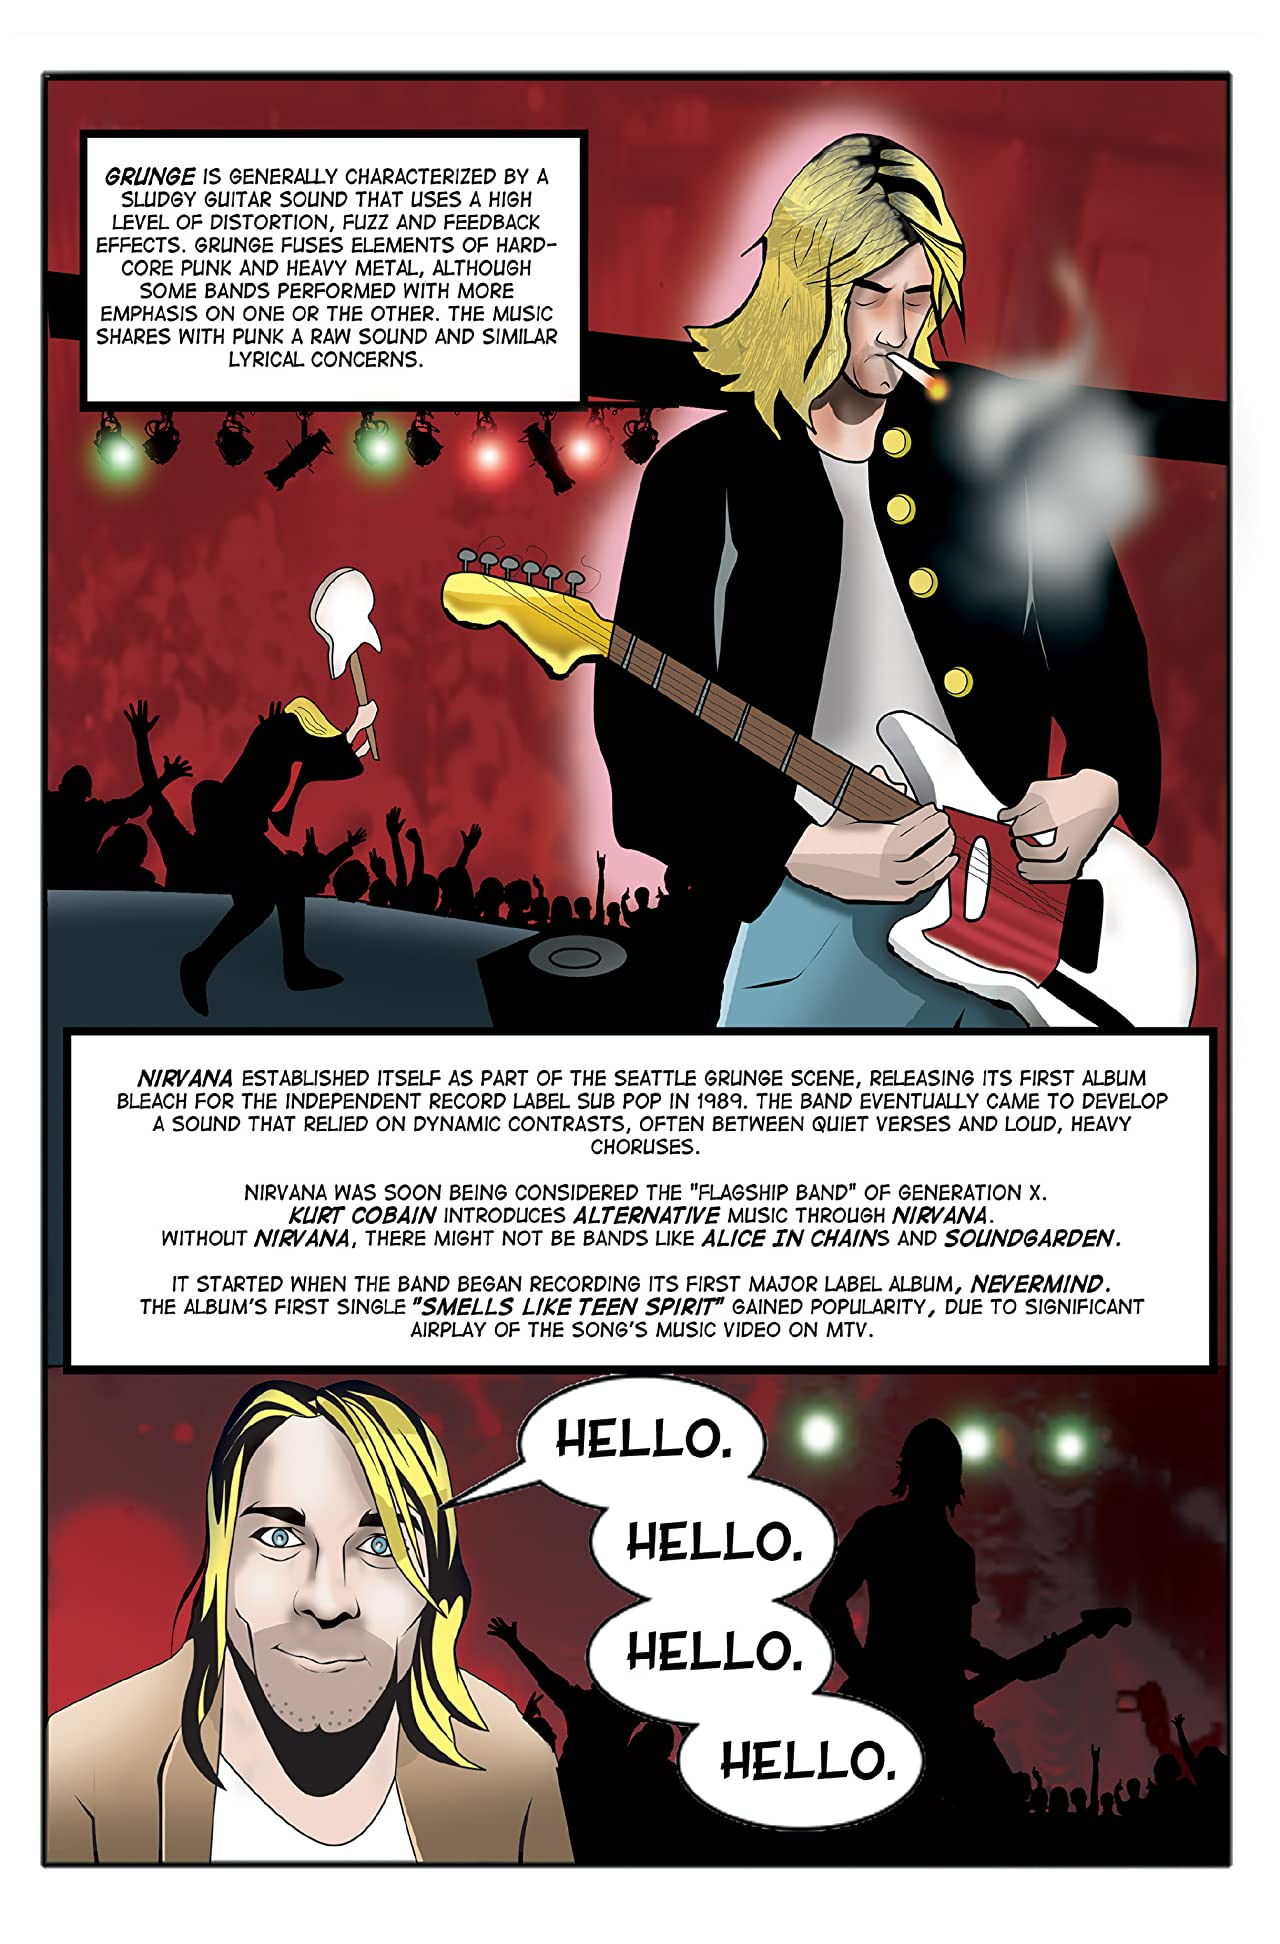 Tribute: Kurt Cobain